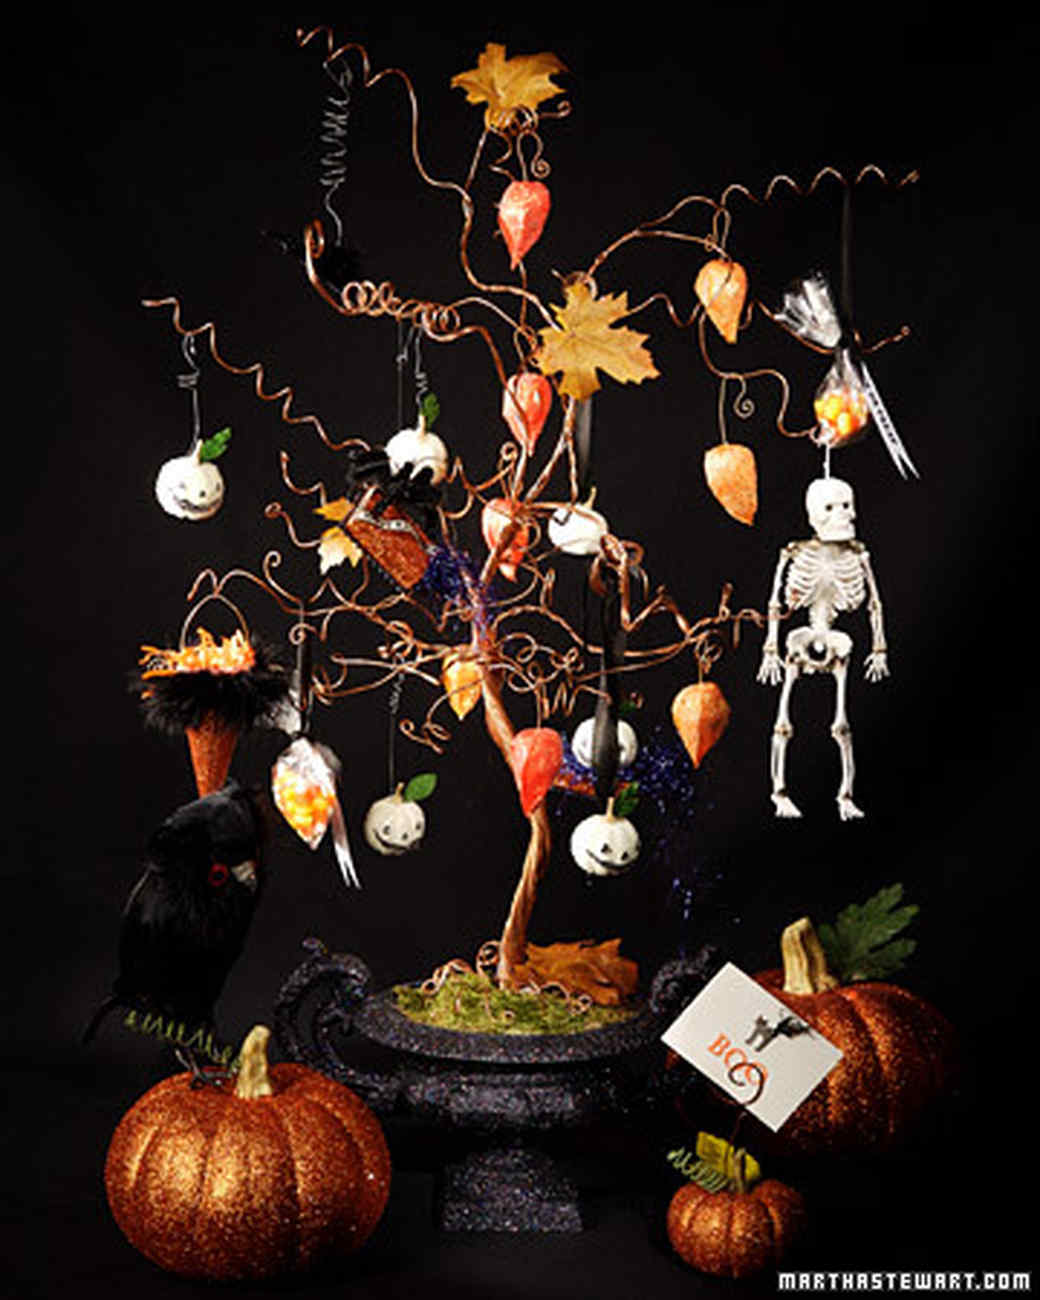 3029_101207_halloweentree.jpg